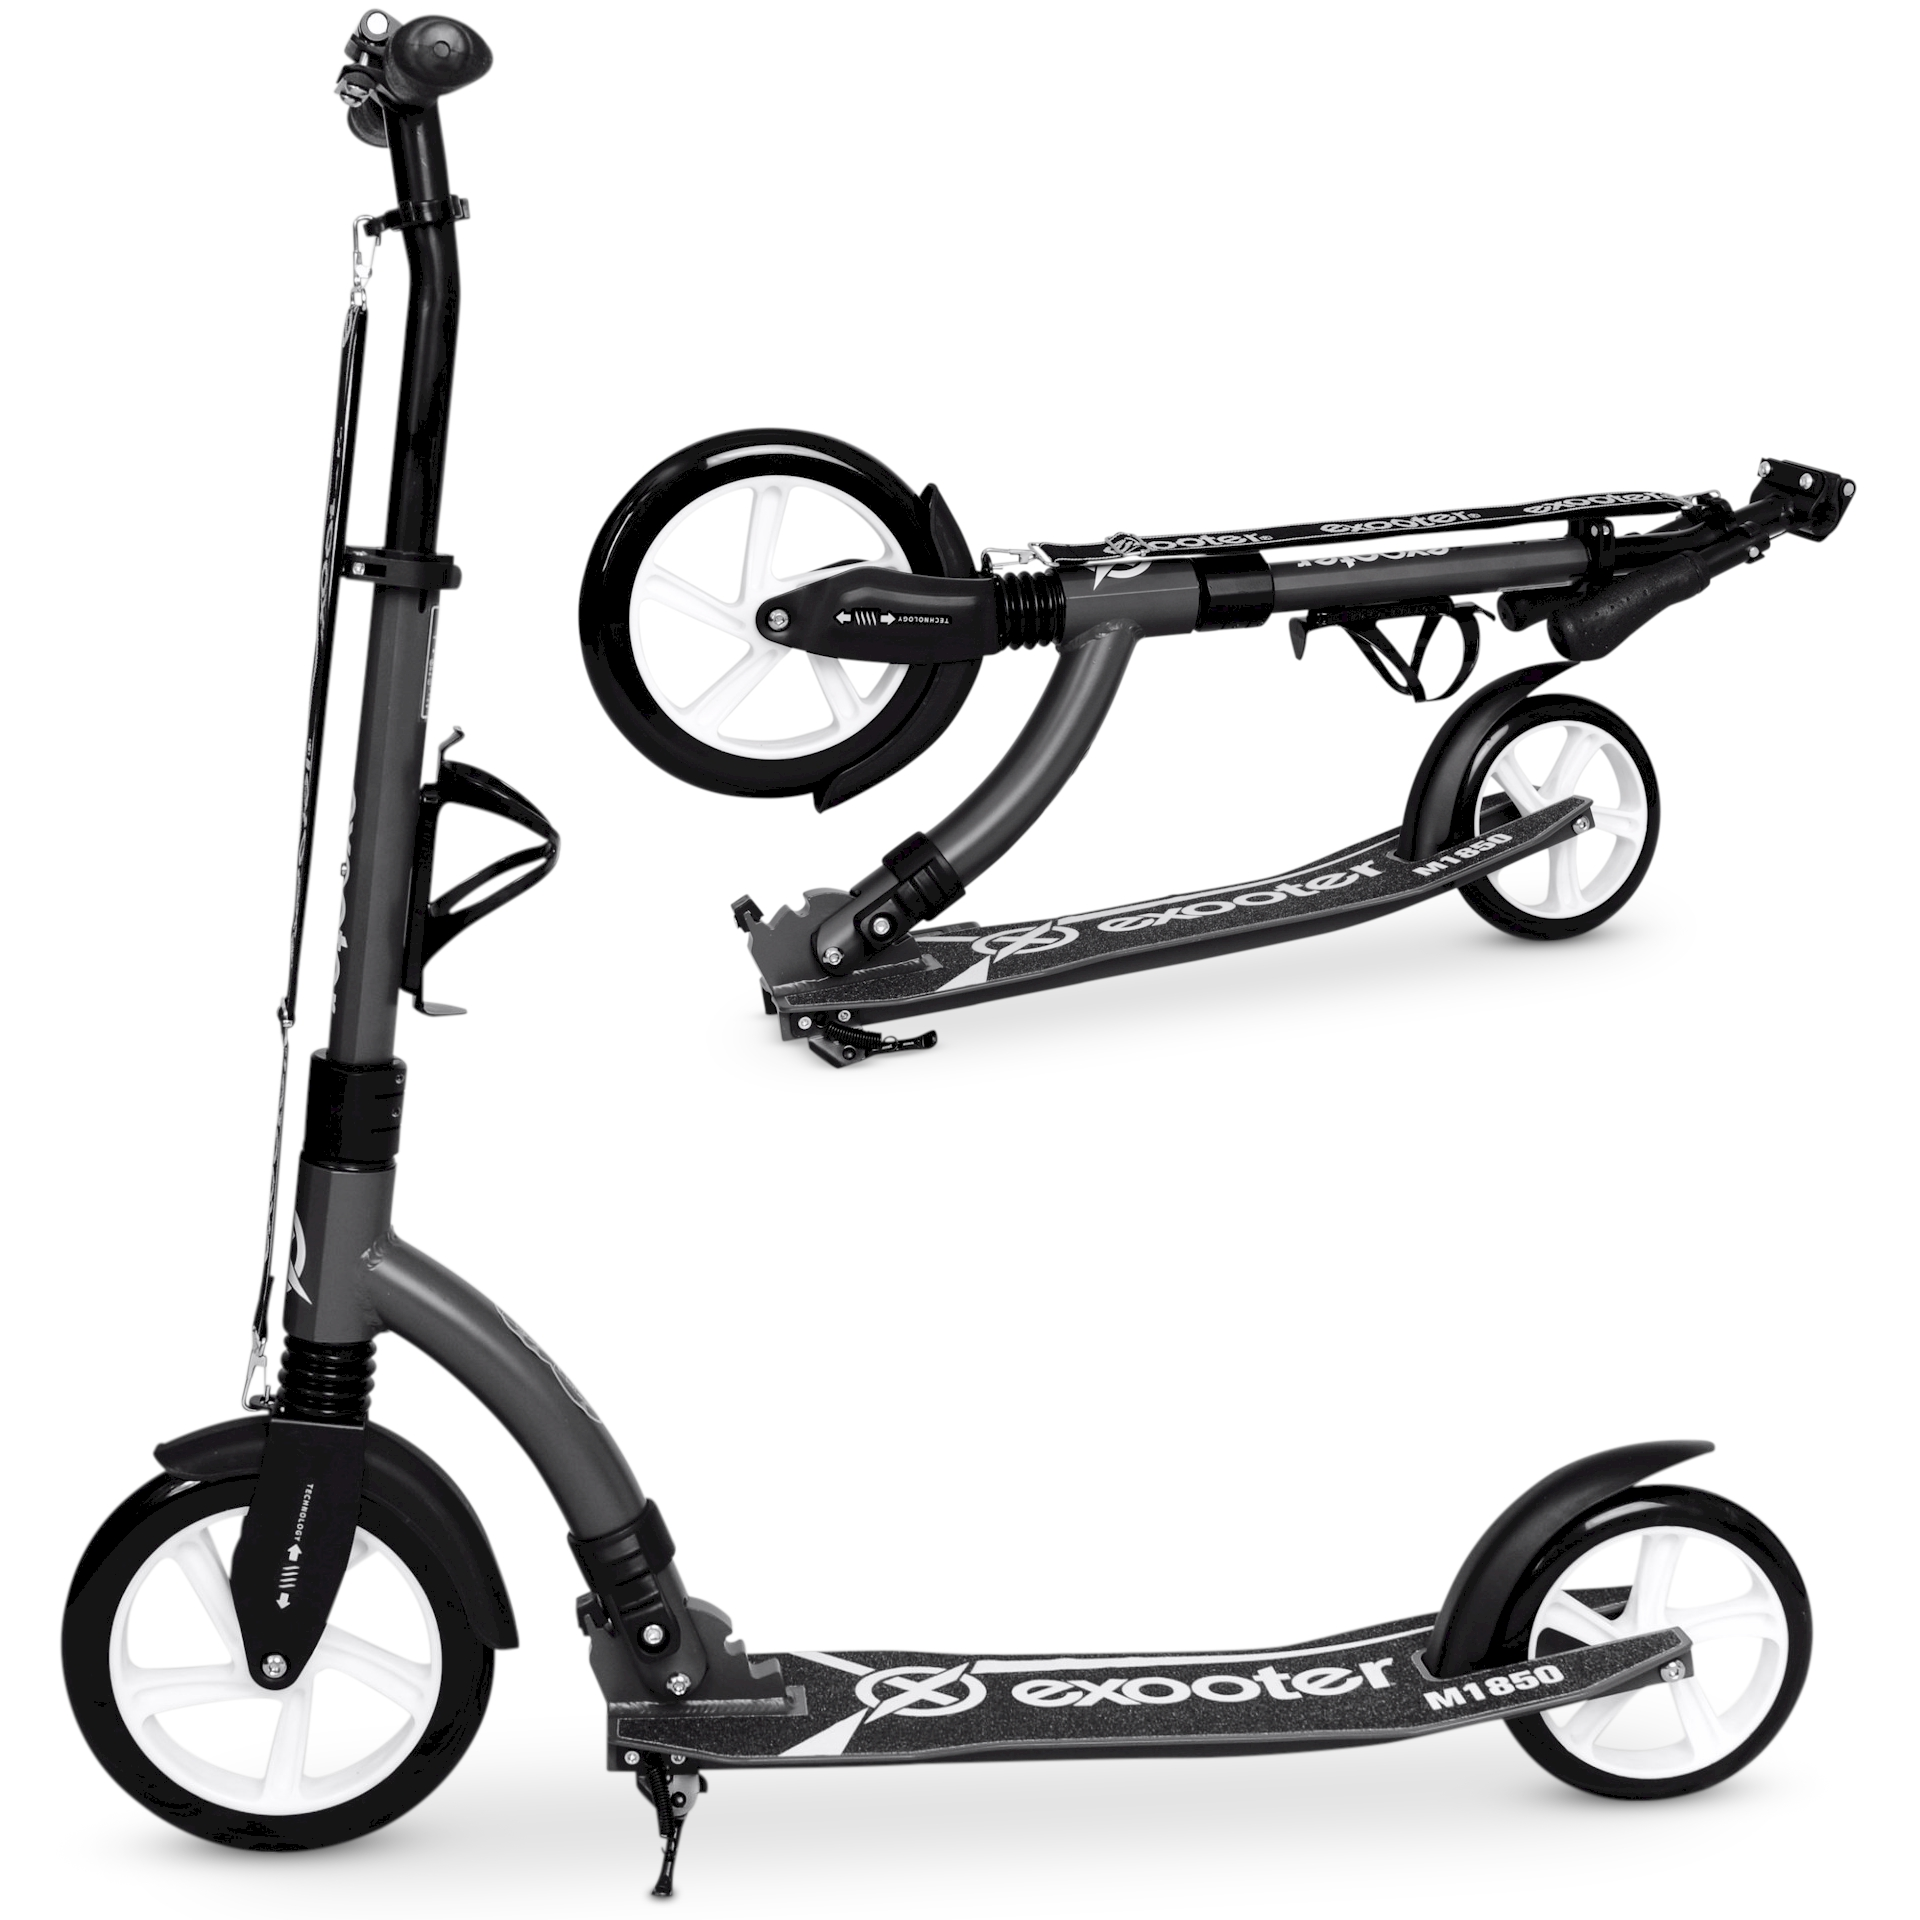 EXOOTER M1850CW 6XL Adult Kick Scooter With Front Shocks And 240mm 180mm White Wheels In... by EXOOTER